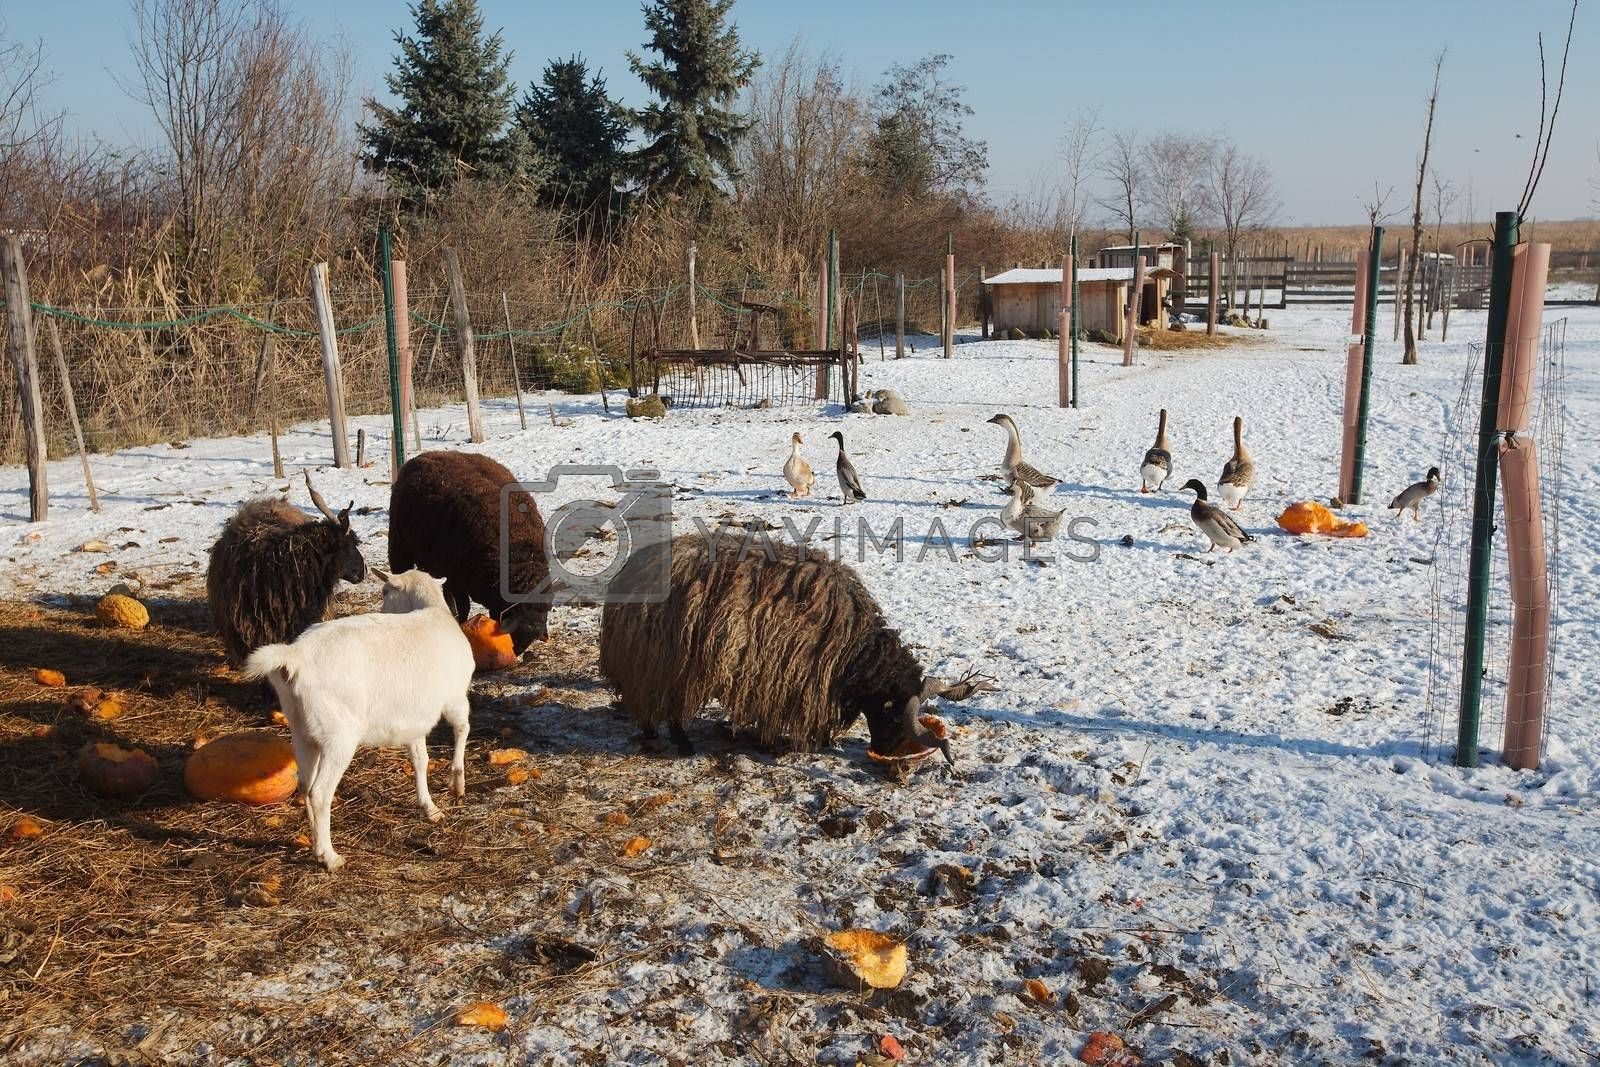 Farm animals eating in the snow